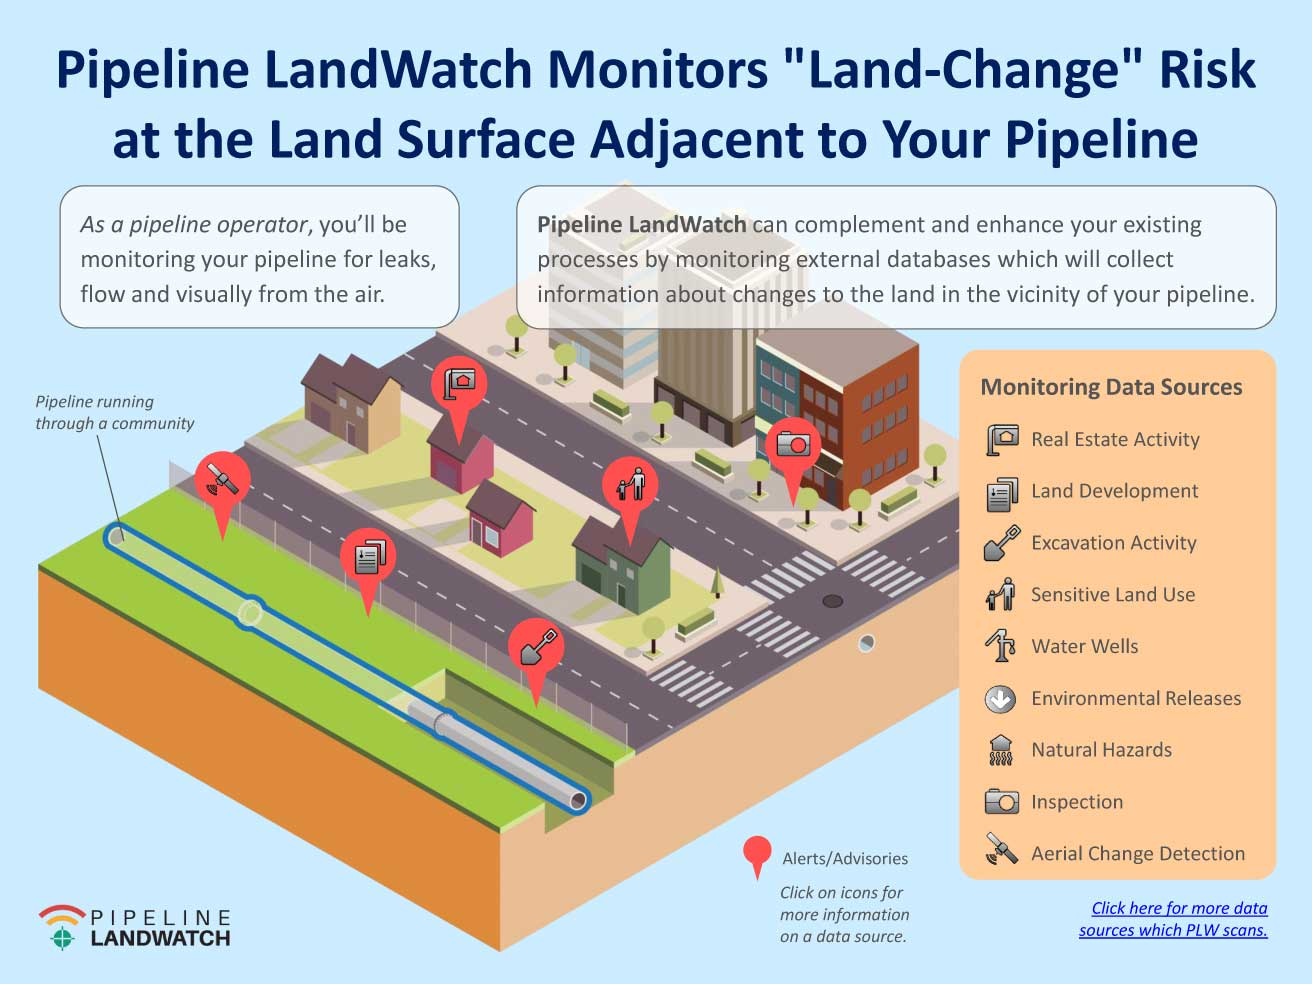 PLW Monitors Land Change Risk